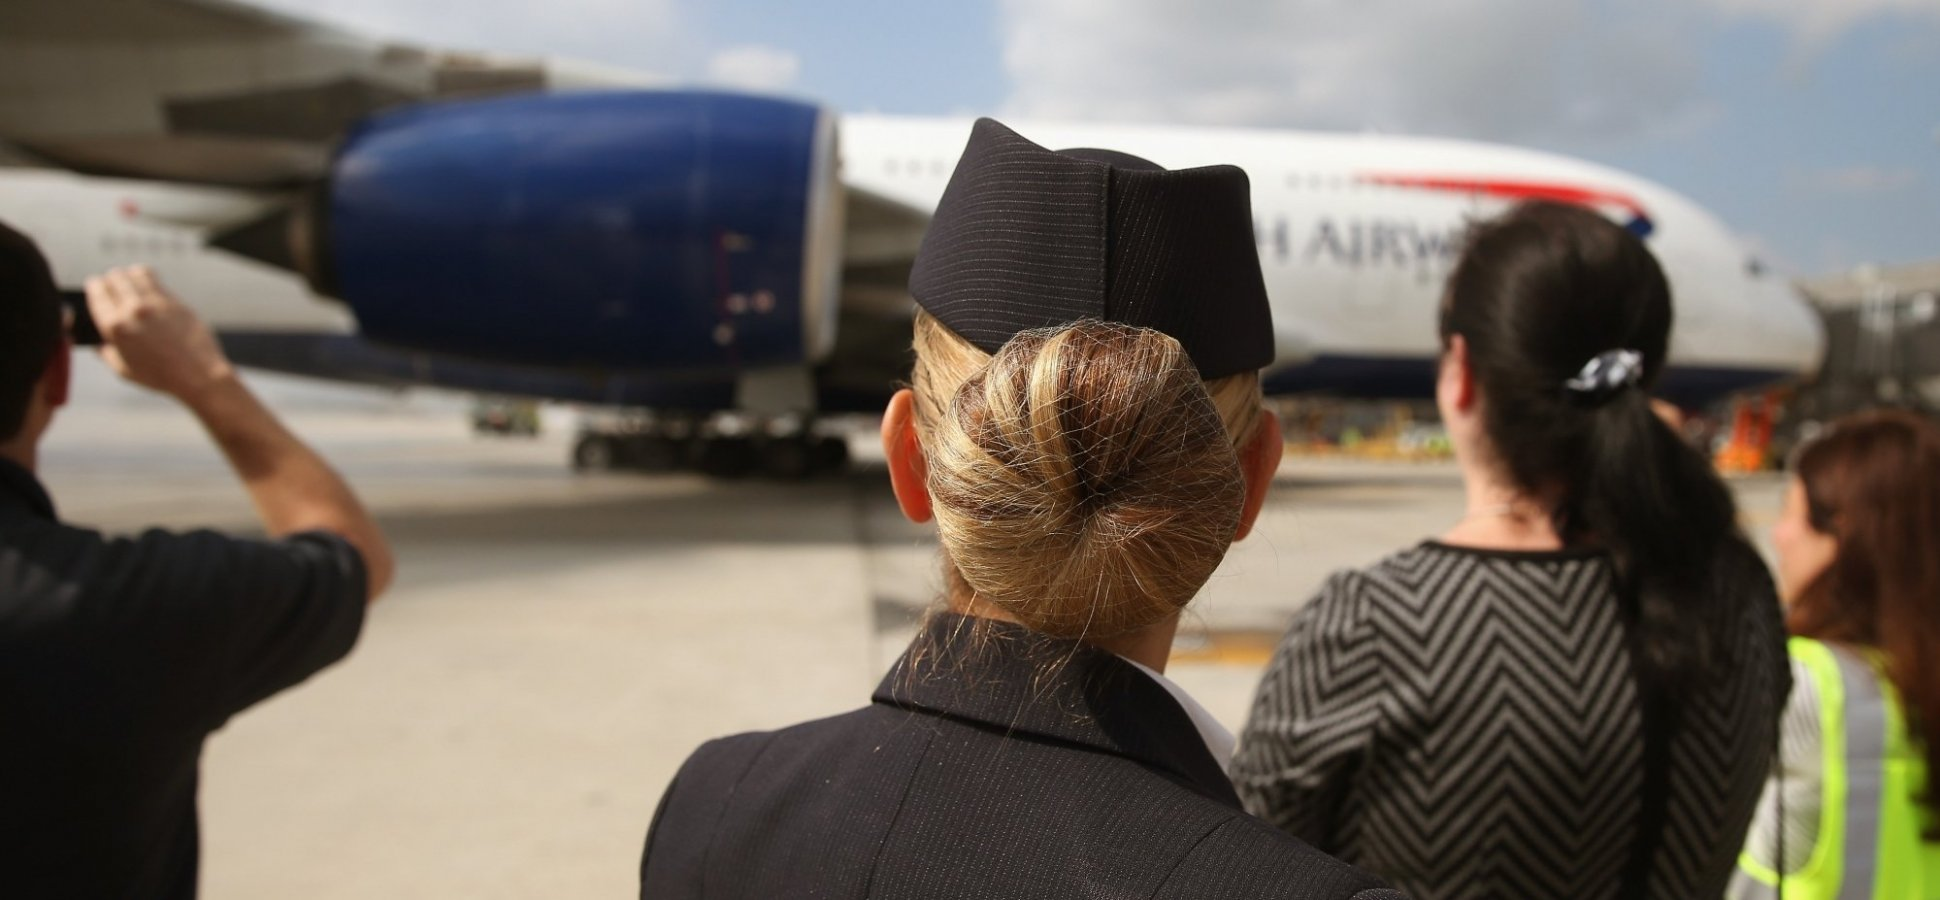 12b485452eca0 British Airways Just Suspended a Flight Attendant for Odd Behavior That's  More Common Than You'd Think | Inc.com